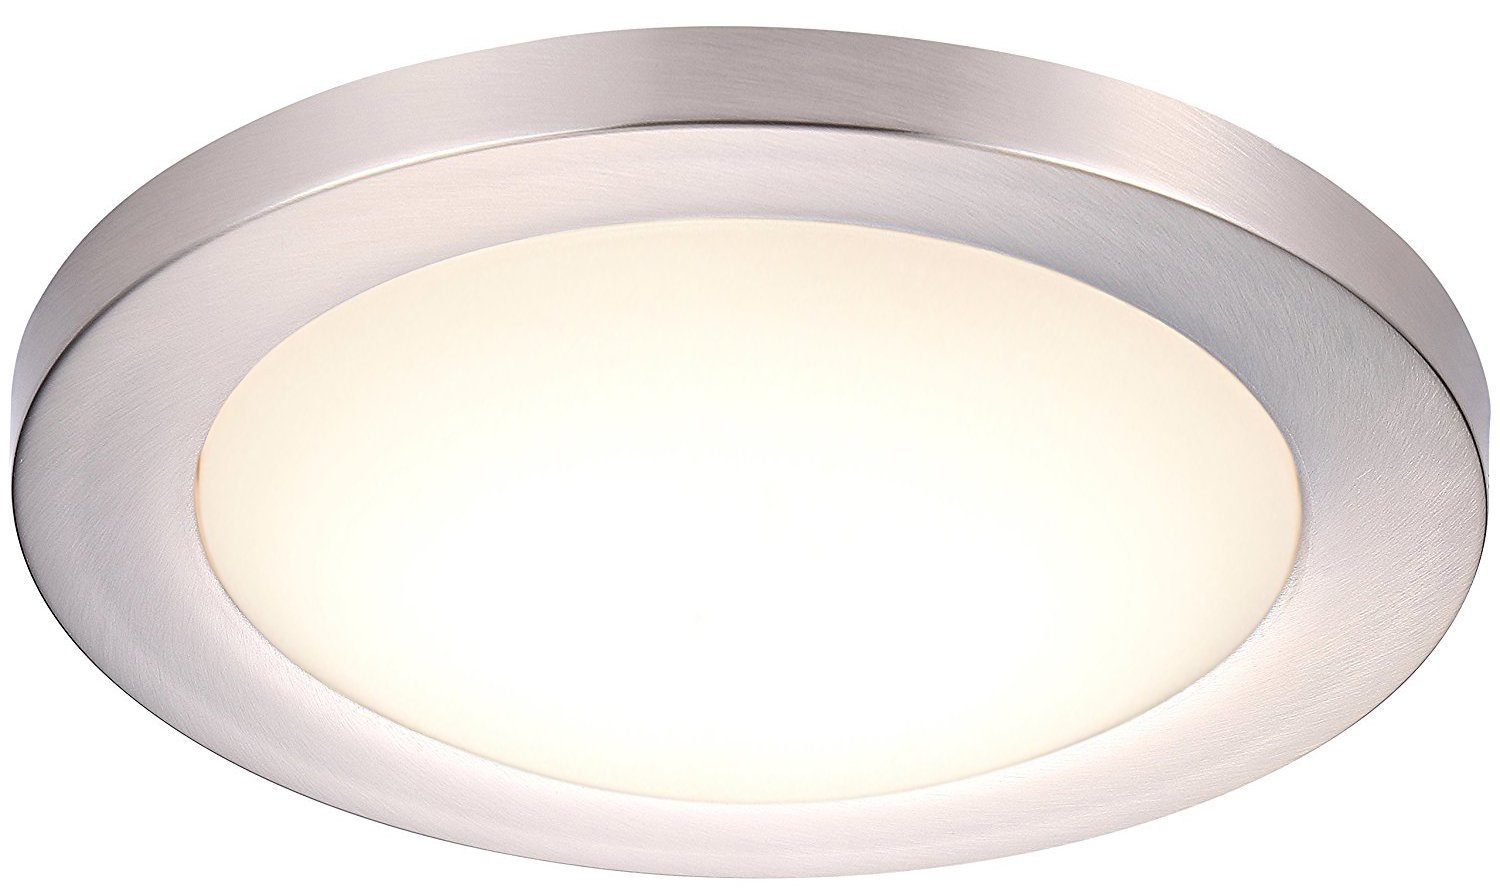 Cloudy Bay Ceiling Light Fixture,12'' LED Flush Mount,17W 3000K Warm White Dimmable,1100lm -120W Incandescent Equivalent,Brushed Nickel Finish